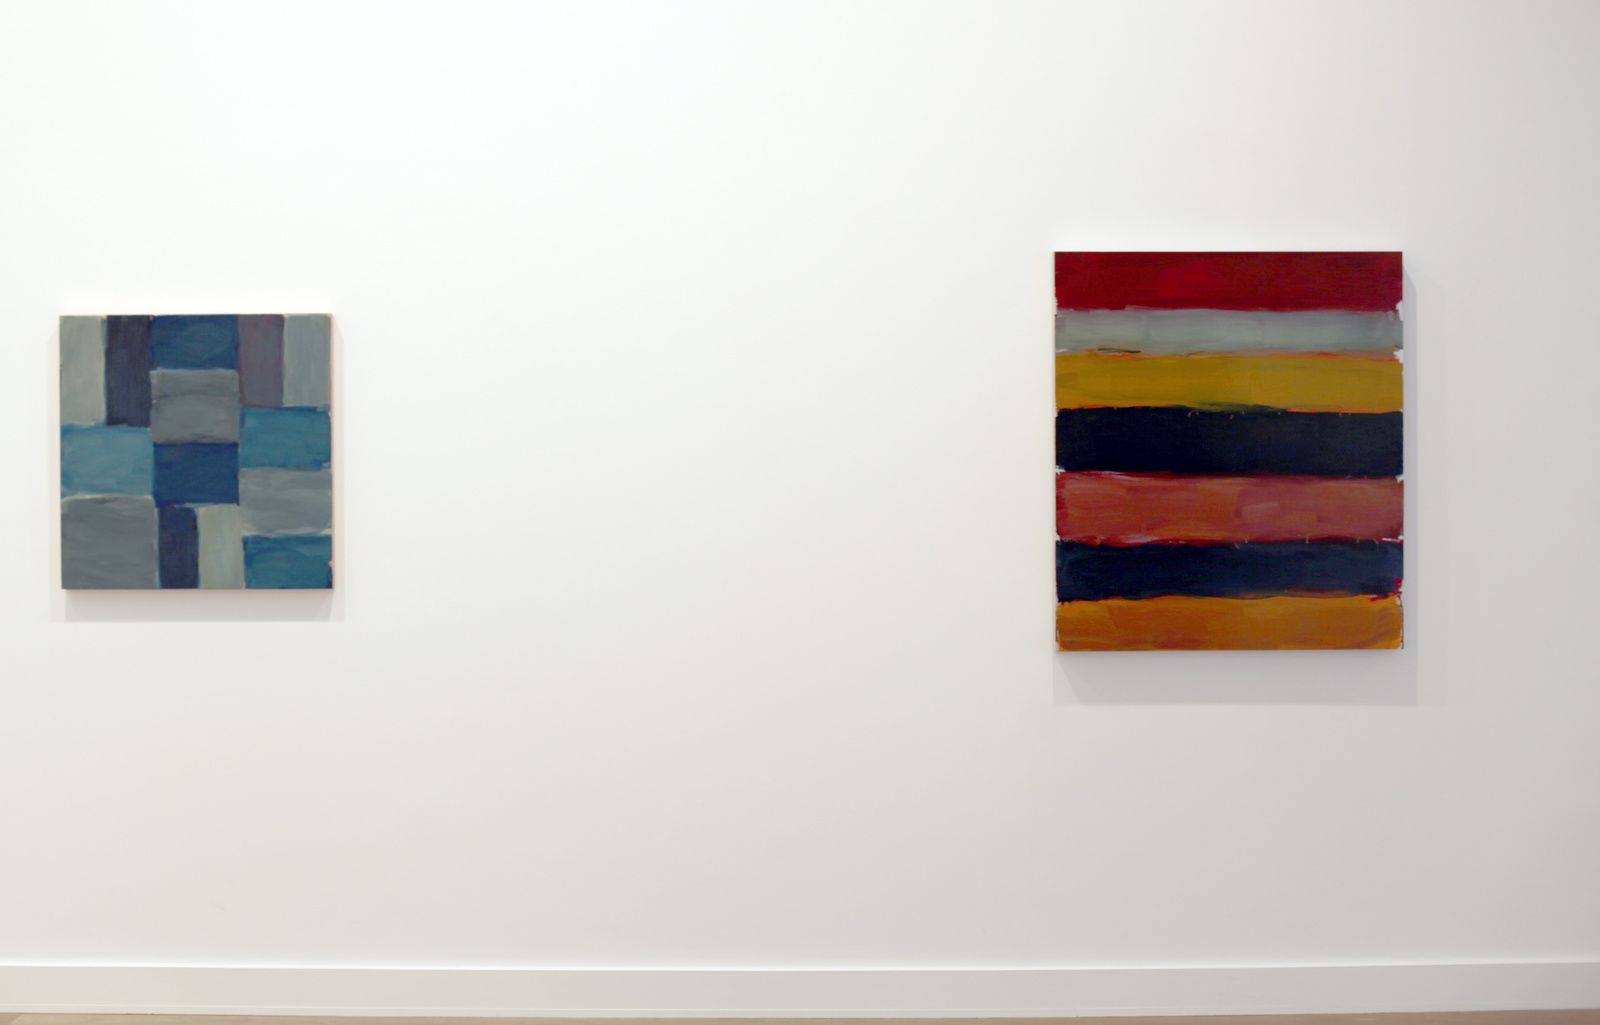 """Wall Blue"", 2015 et ""Landline Red Yellow Blue"", 2015 de Sean SCULLY - Courtesy Galerie Lelong © Photo Éric Simon"